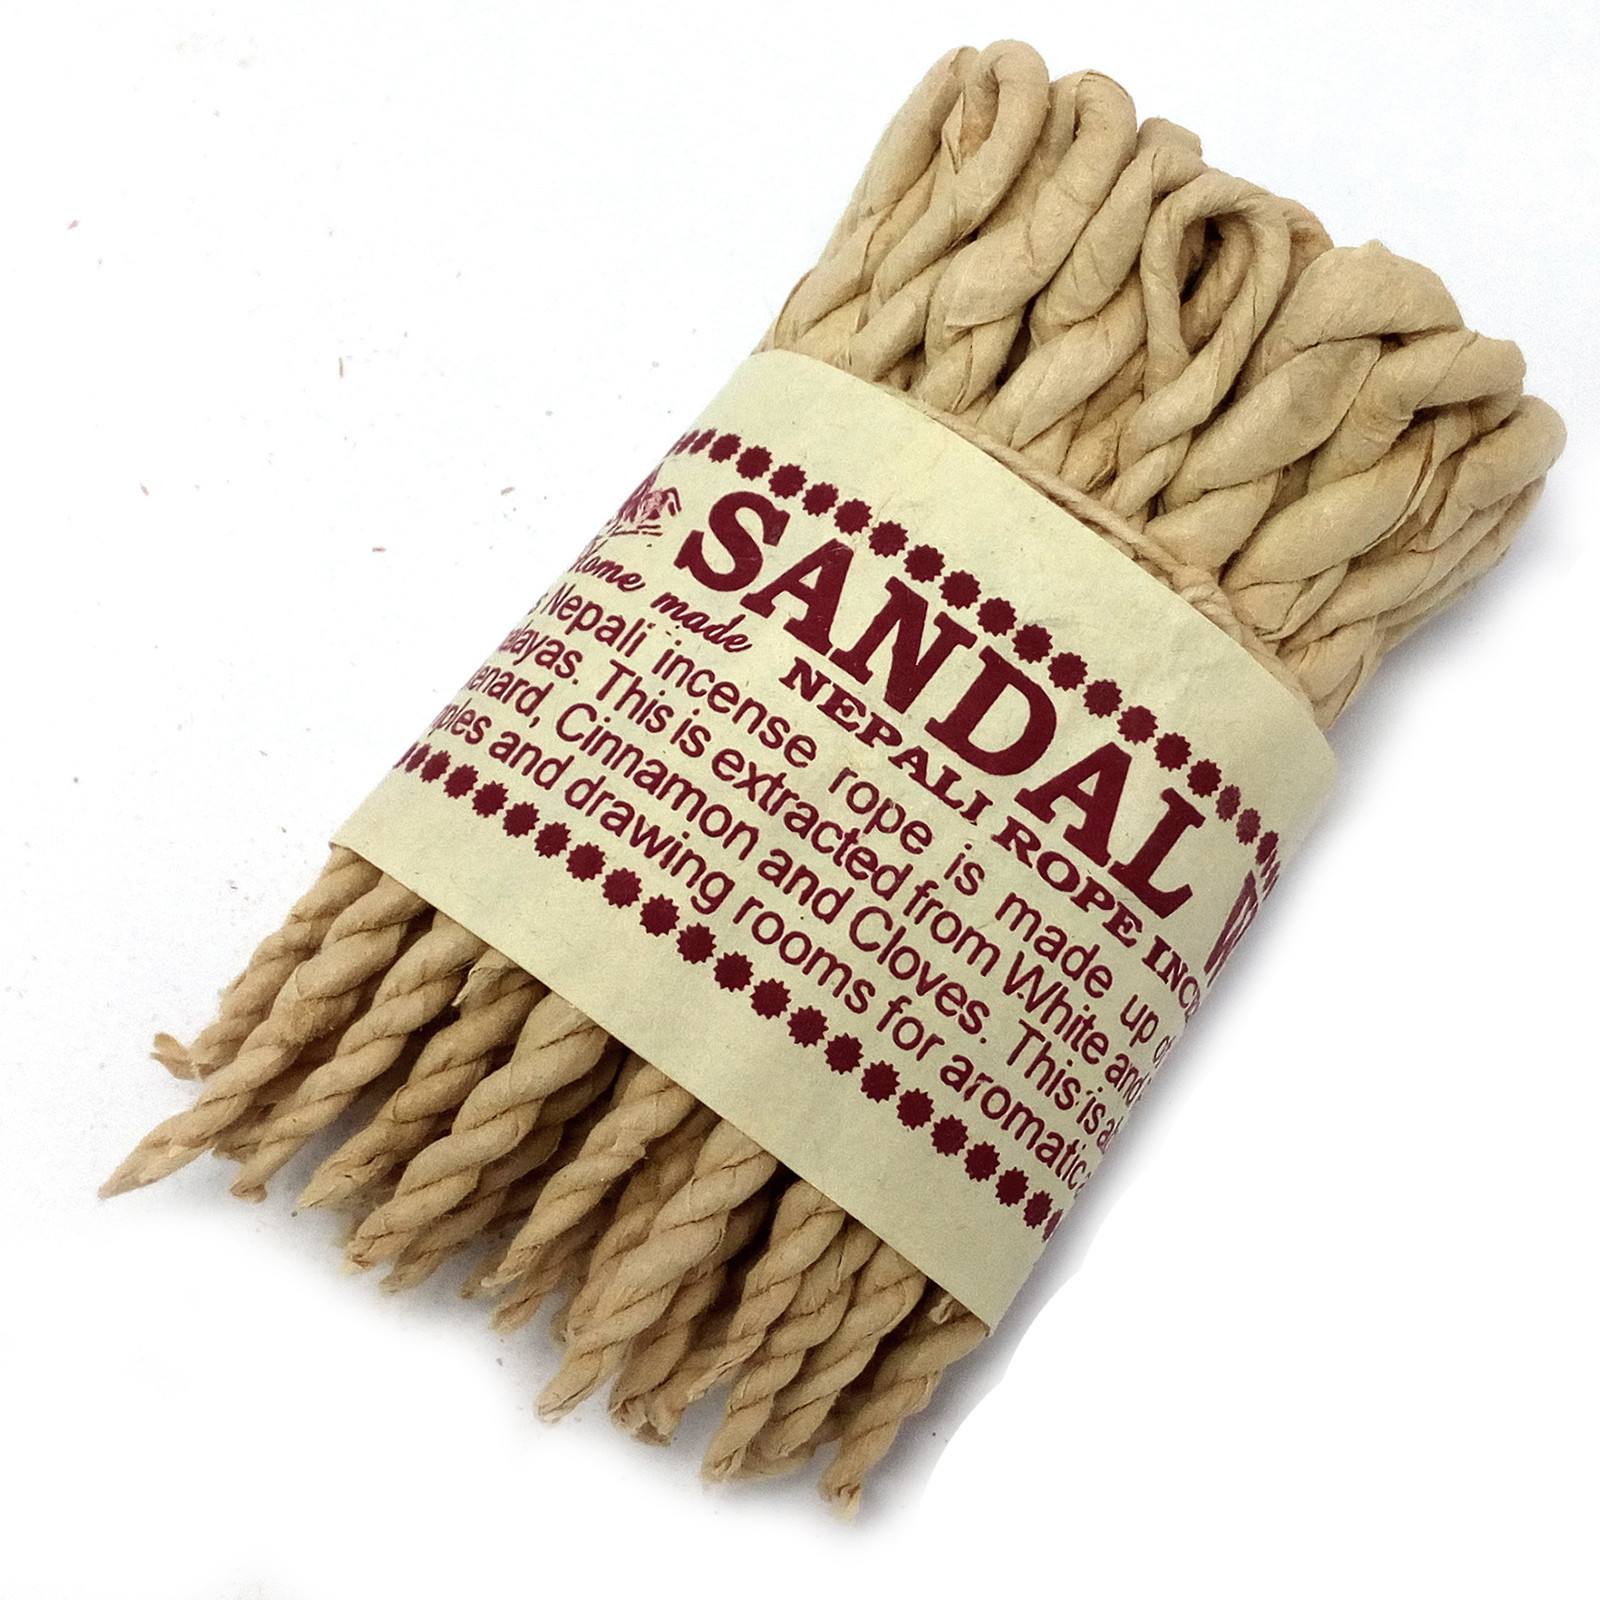 Pure Herbs Sandalwood and Spice Rope Incense